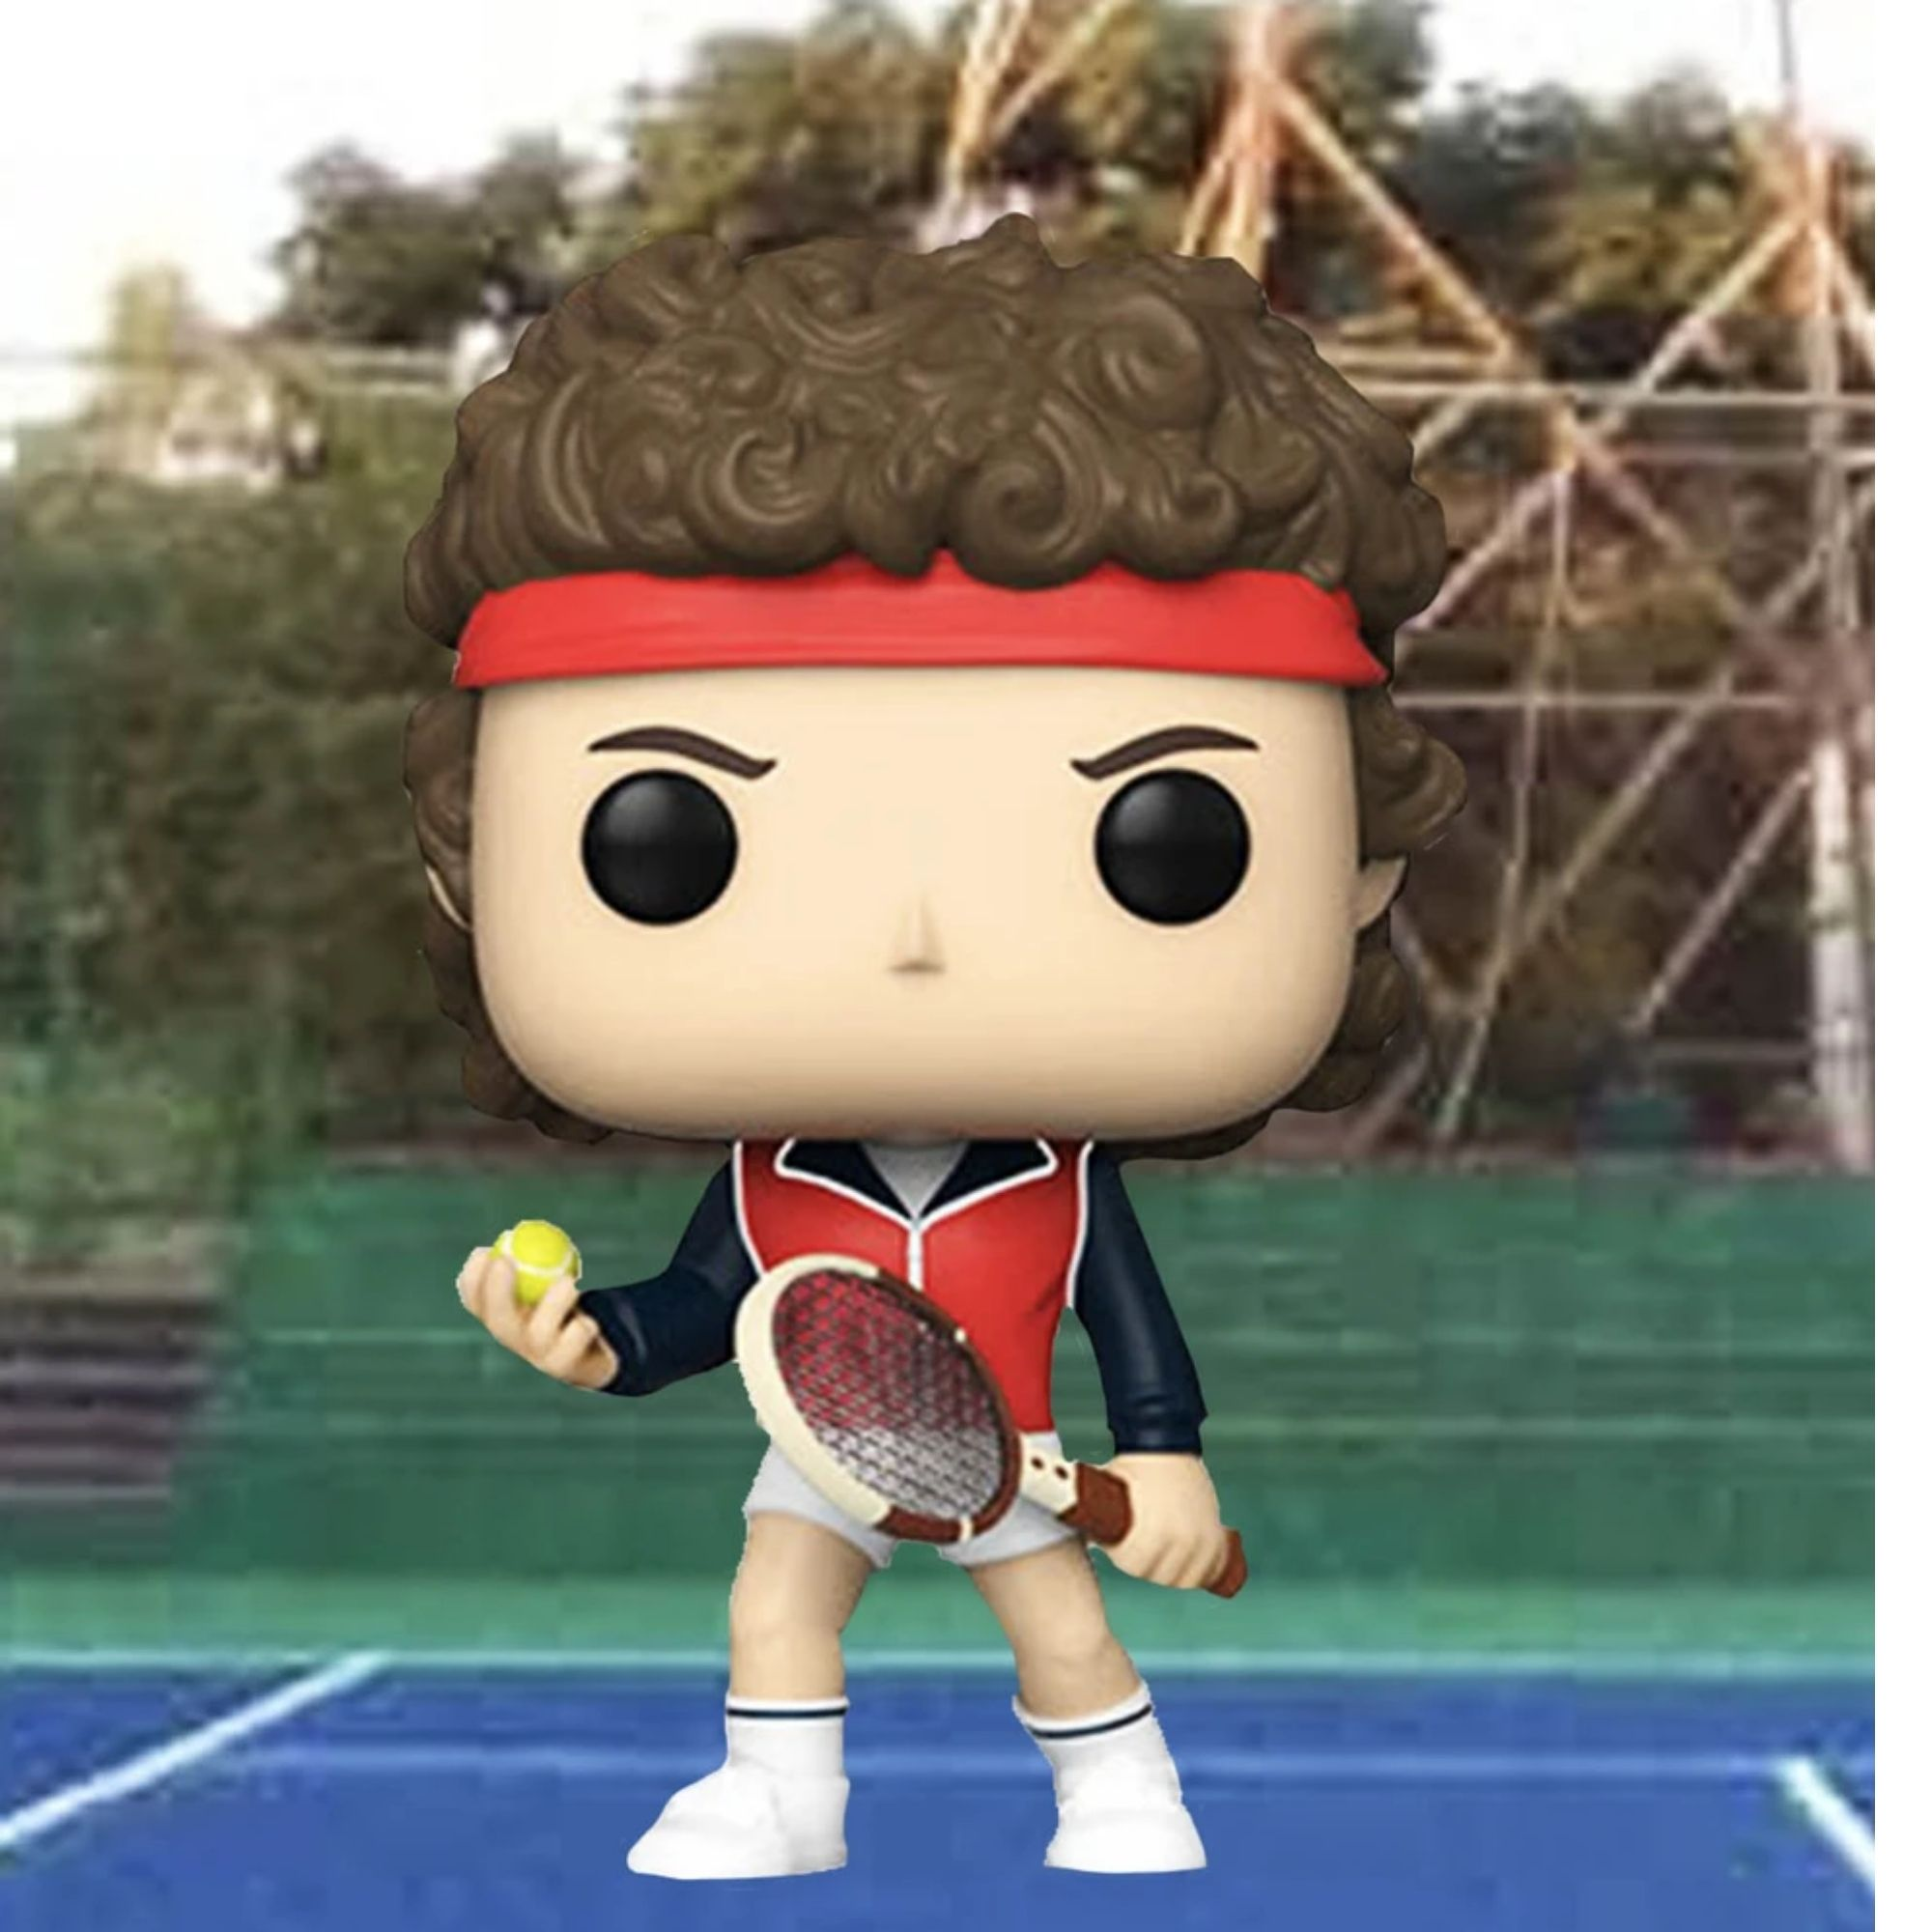 Funko Pop Tennis John McEnroe #03 - Game Land Brinquedos